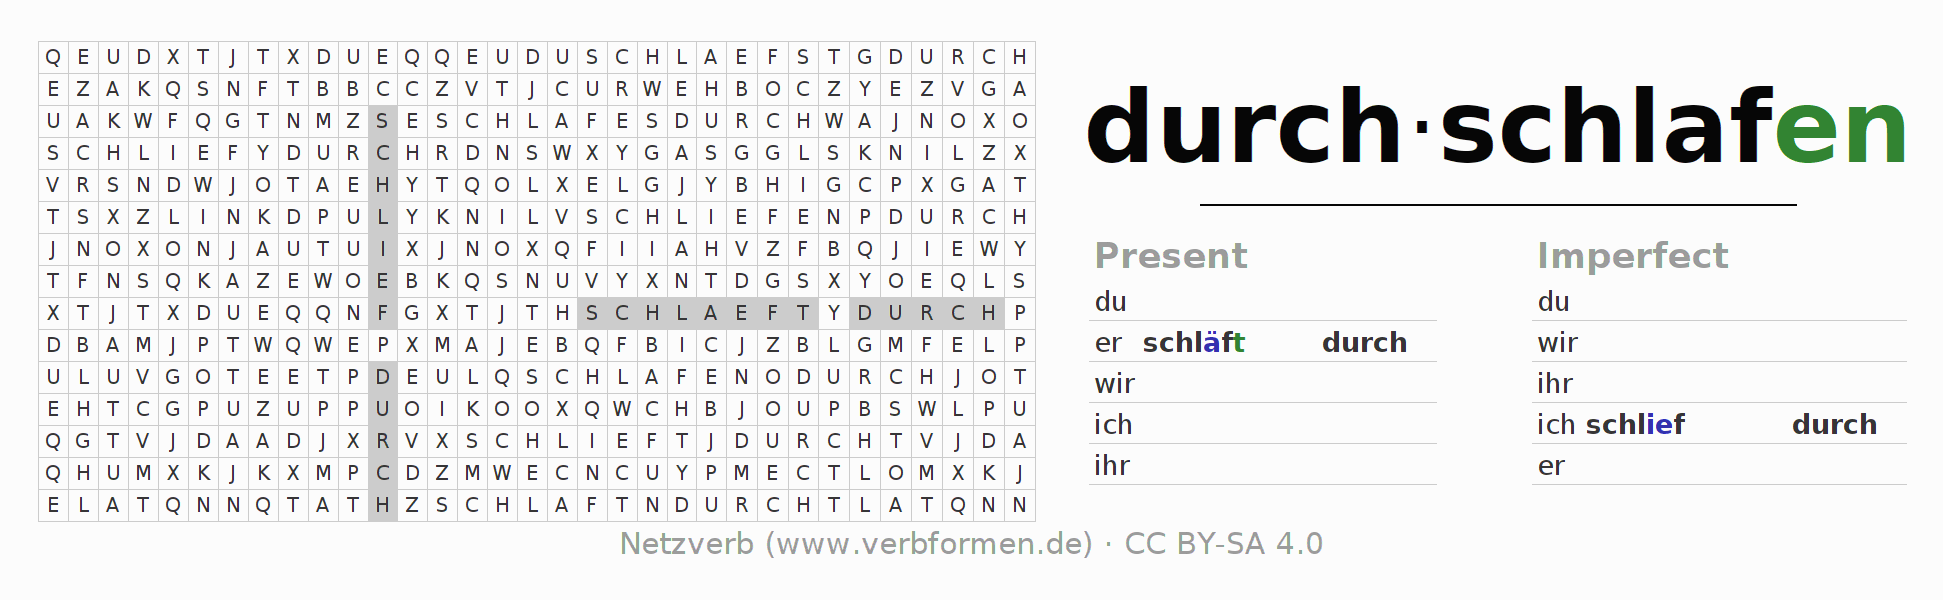 Word search puzzle for the conjugation of the verb durch-schlafen